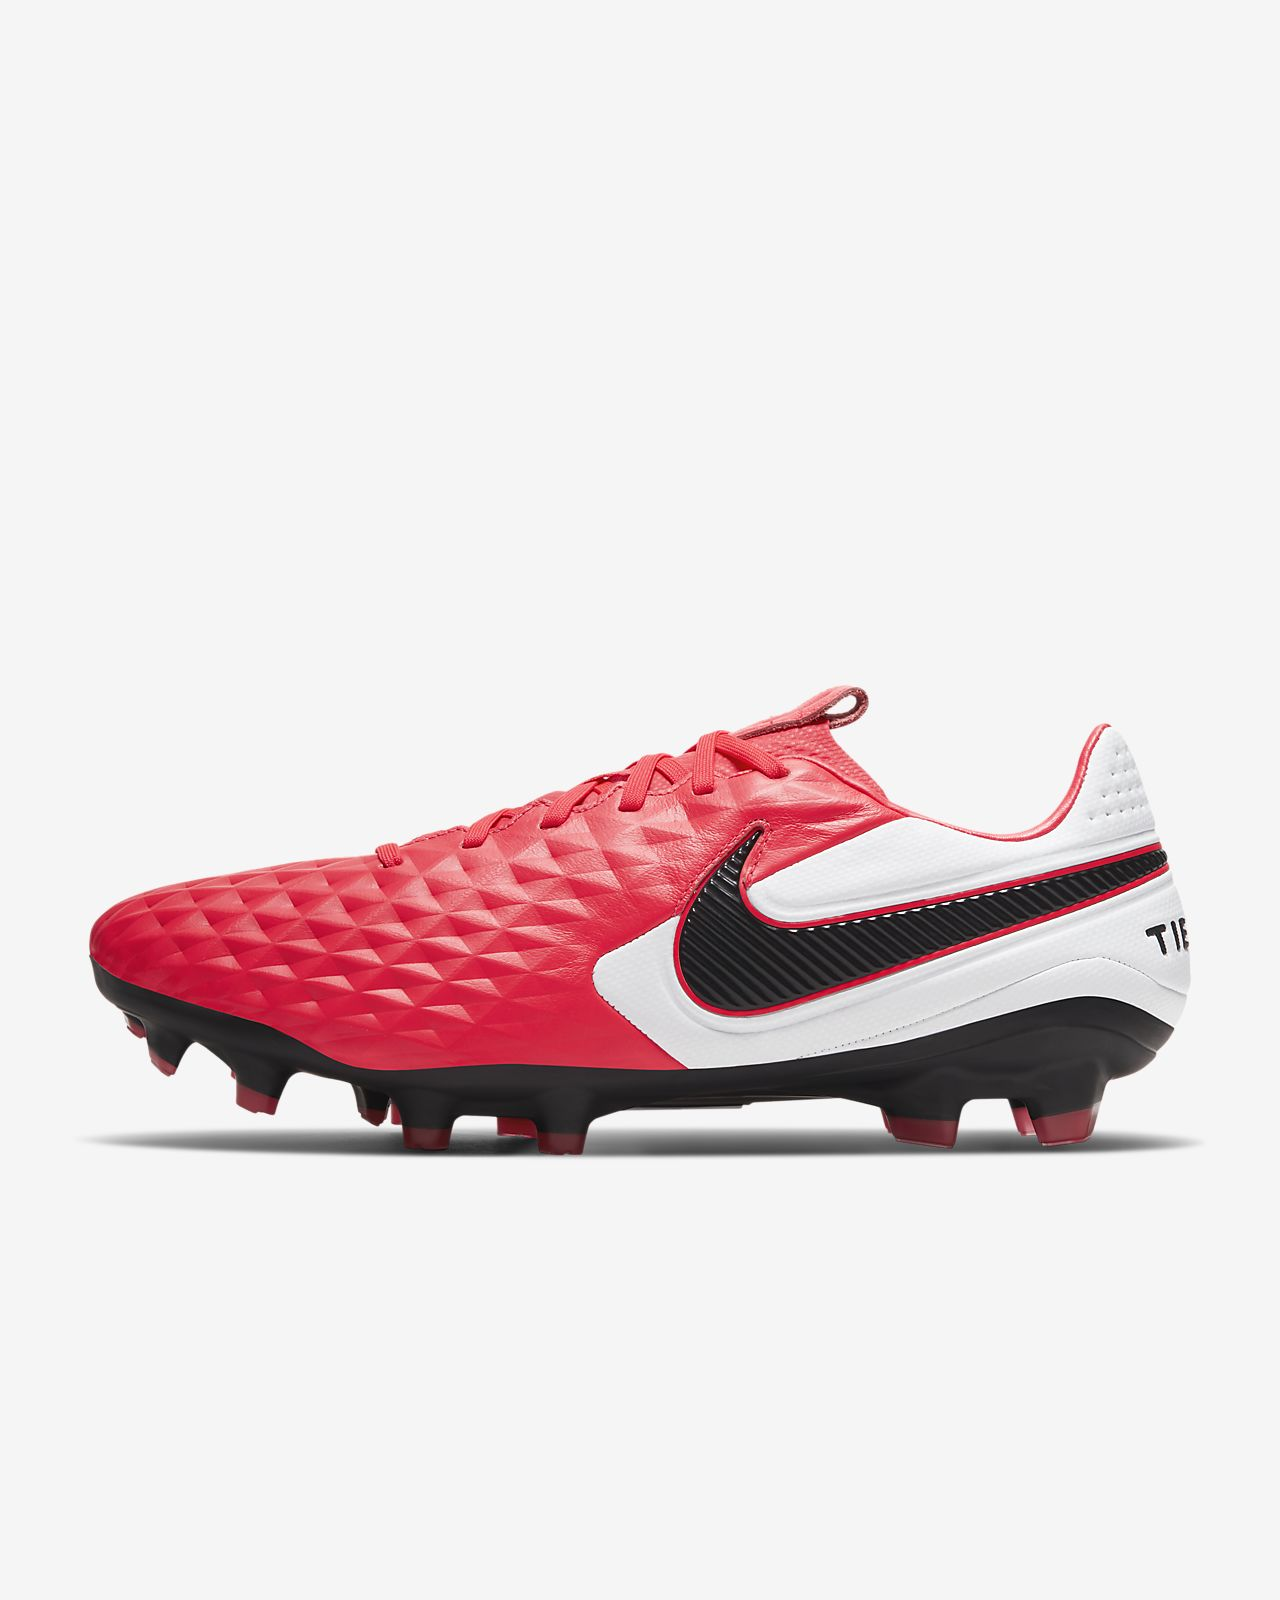 Nike Tiempo Legend 8 Pro FG Firm Ground Football Boot